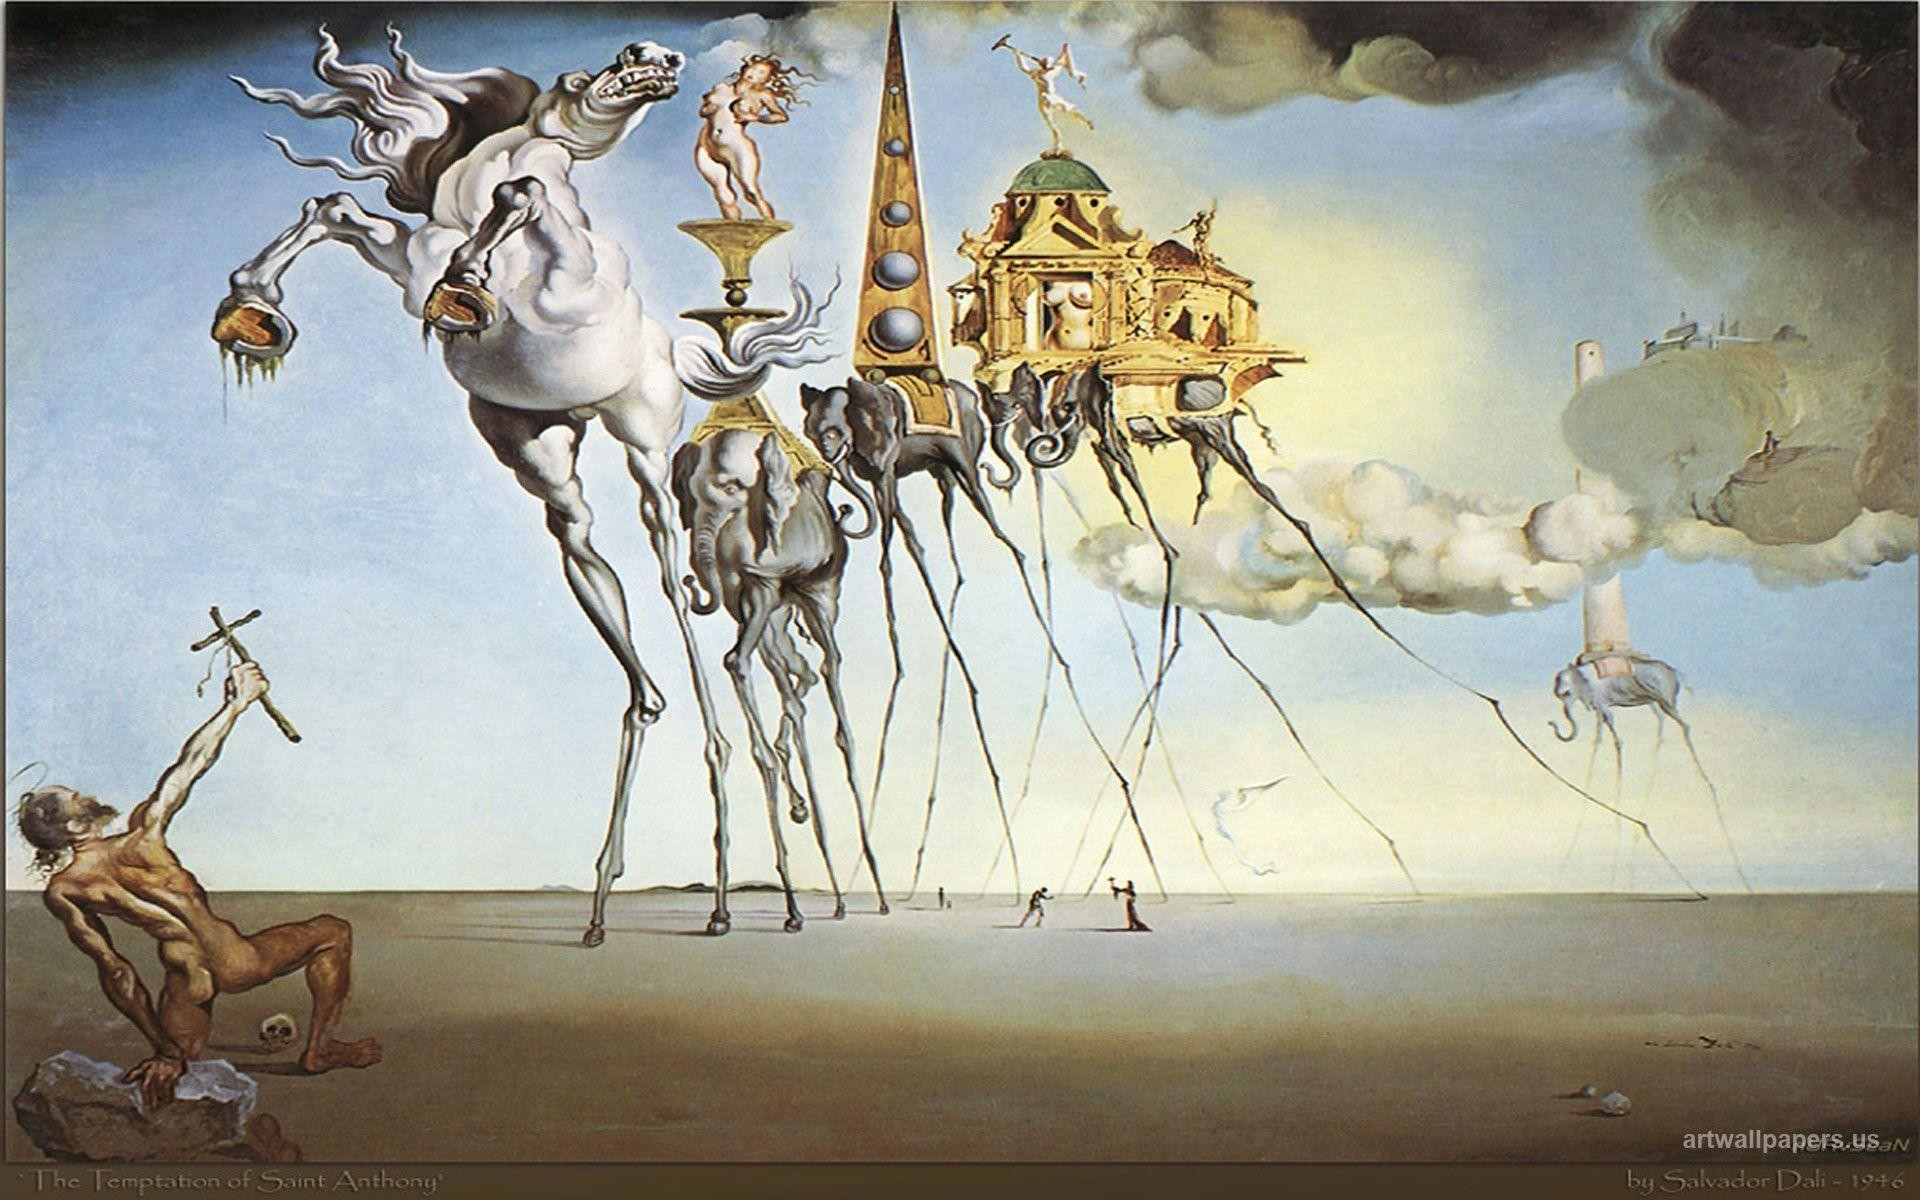 1920x1200 Salvador-Dali-Wallpaper-2.jpg Wing's Daily News